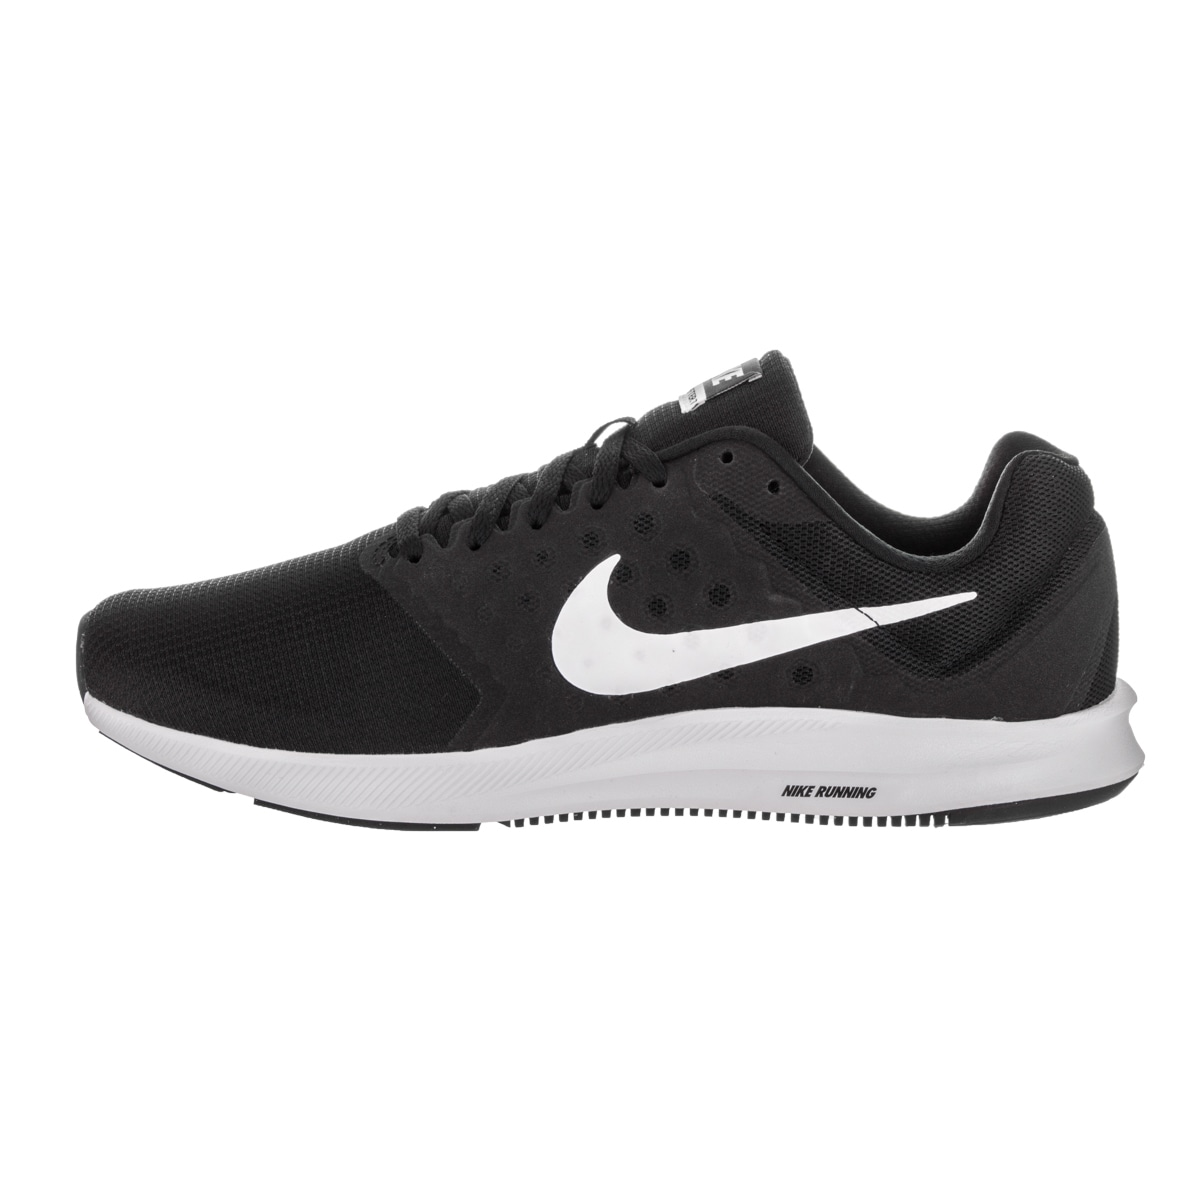 96f5faee0c968 Shop Nike Men s Downshifter 7 Black Running Shoes - Free Shipping Today -  Overstock - 14457947